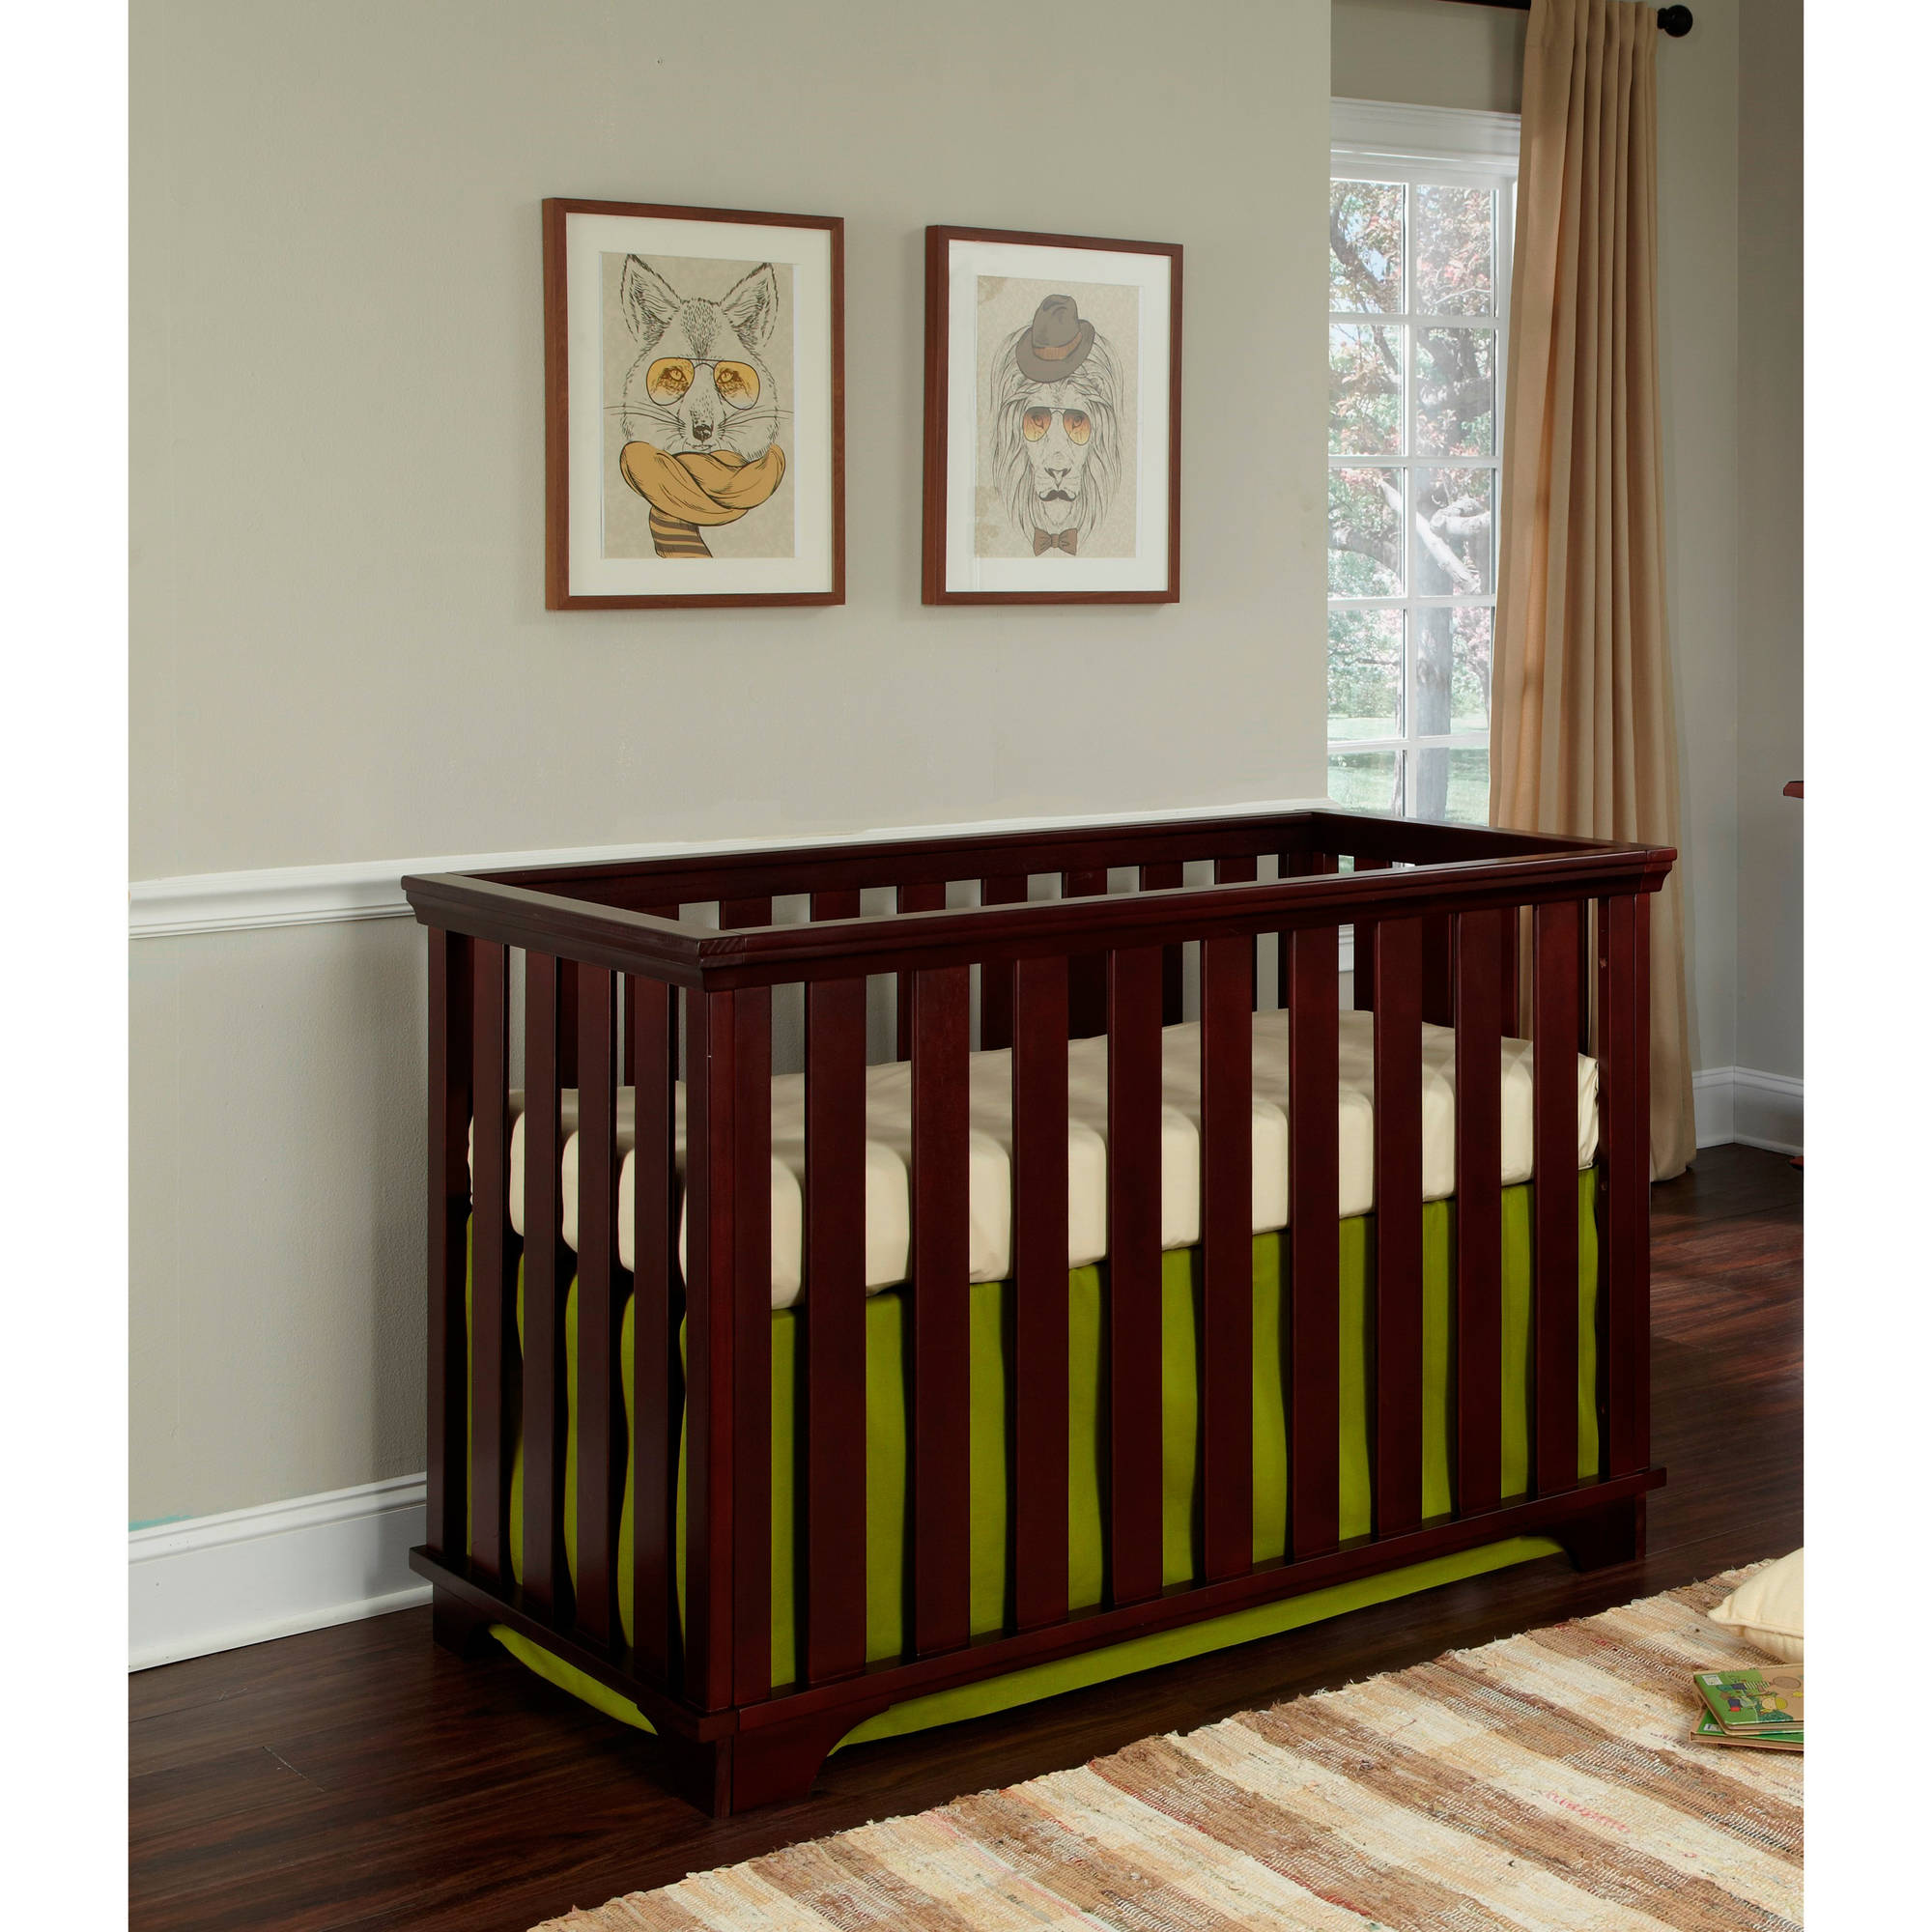 Imagio Baby Midtown Island 3-in-1 Convertible Fixed-Side Crib, Chocolate Mist